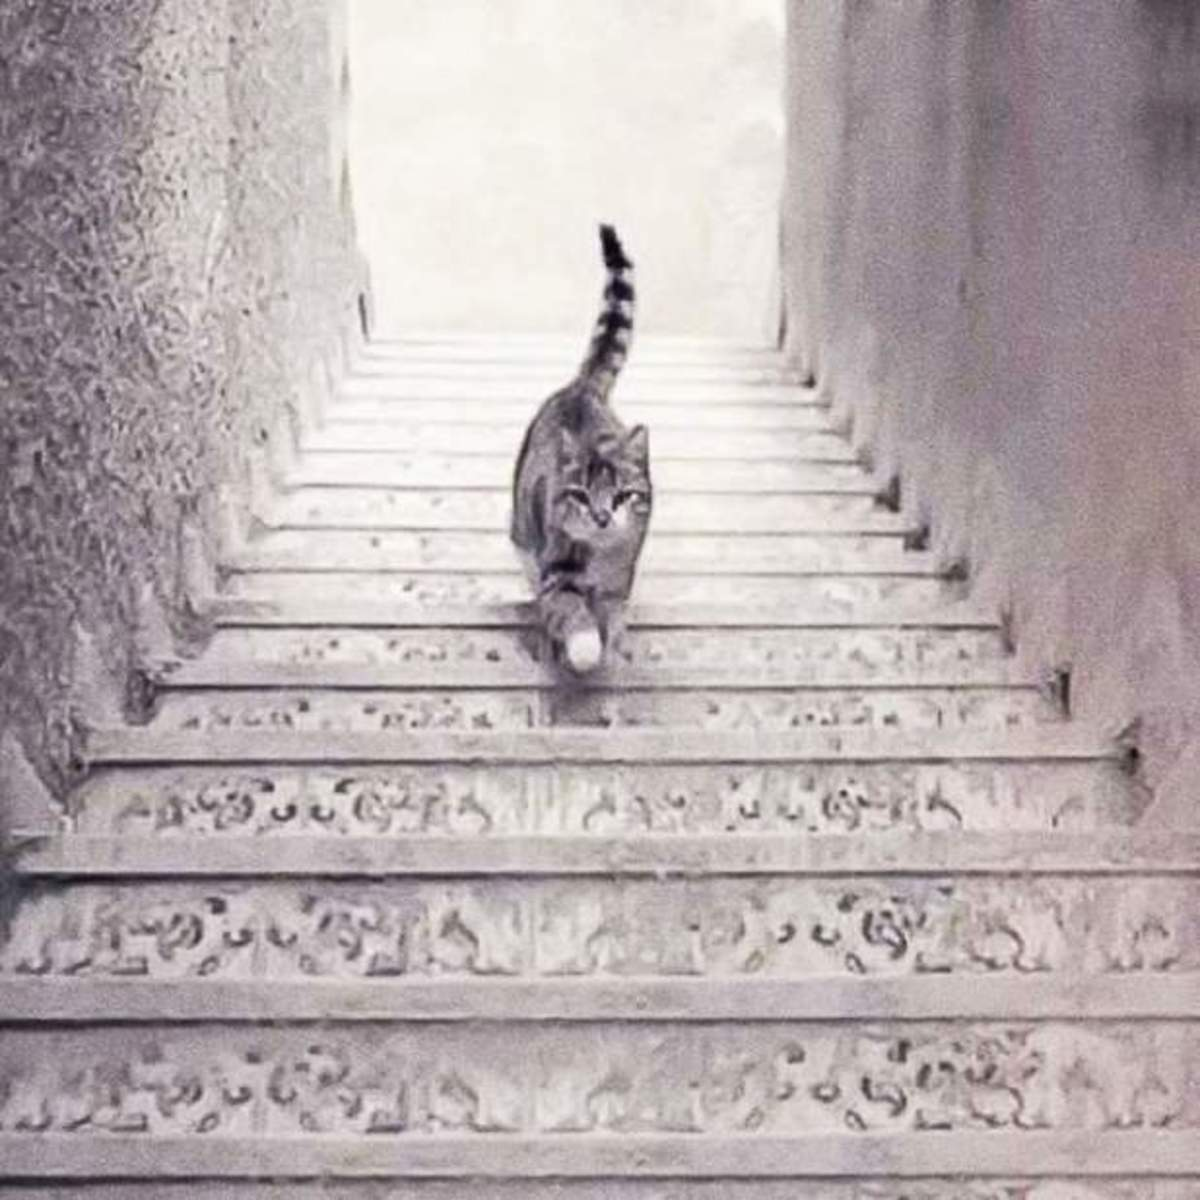 Cat Going Up or Down Stairs illusion